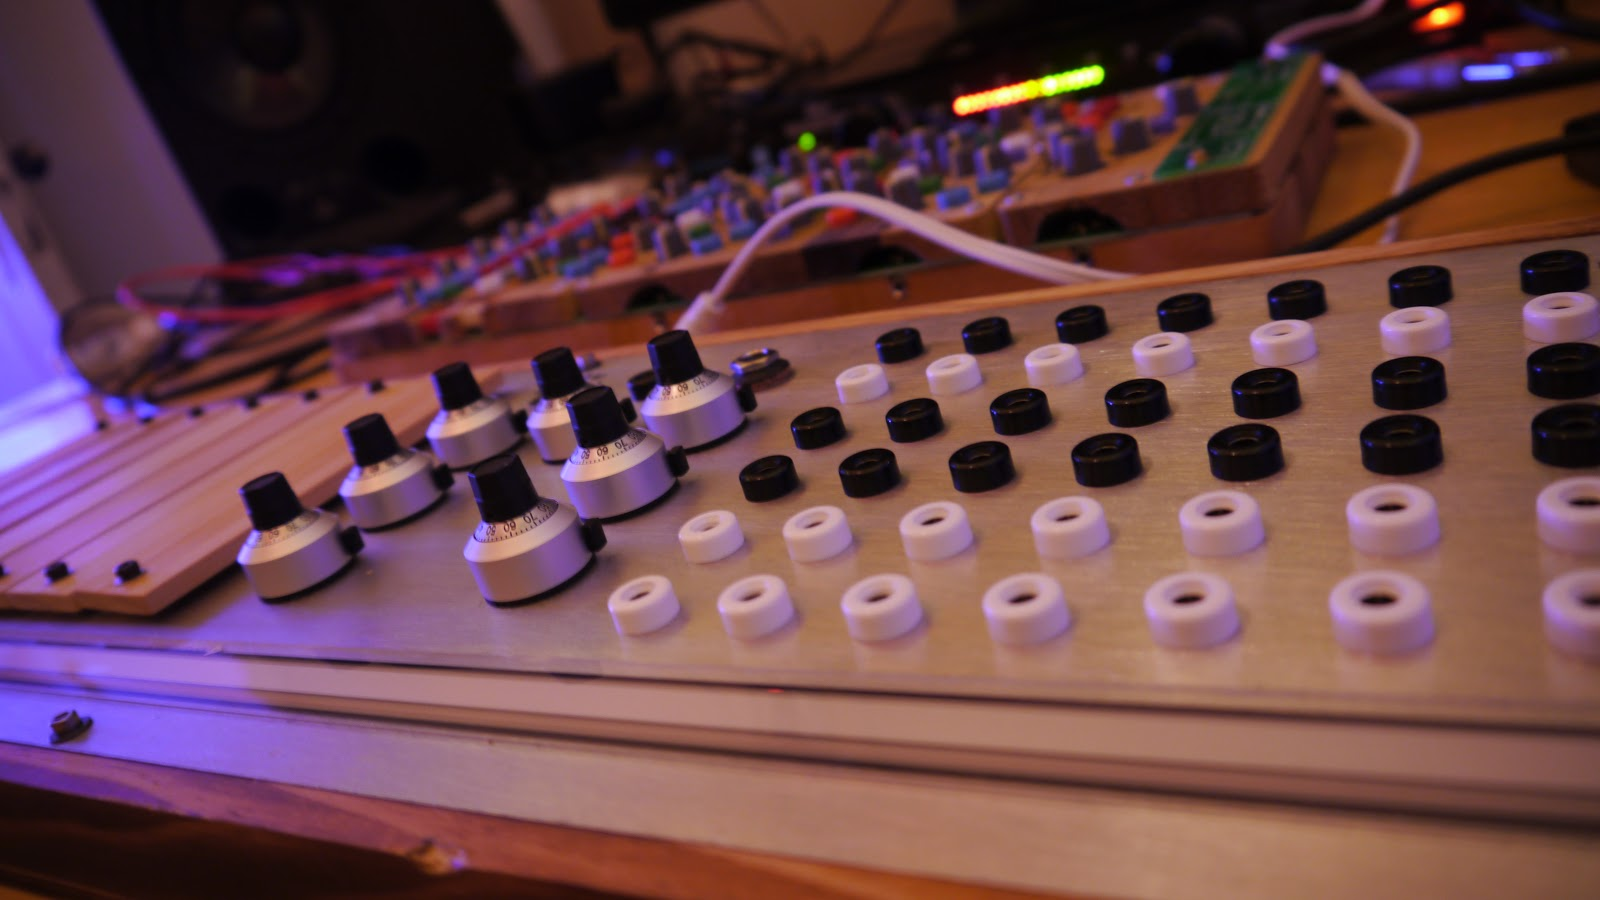 Matrixsynth Wednesday May 6 2015 Diabolical Devices Casio Sk1 Circuit Bent Sampling Fun New Pics Of The Signed Meng Qi Sidrassi Previous Posted Here Details Captured In That Post This One Is Currently Up For Sale